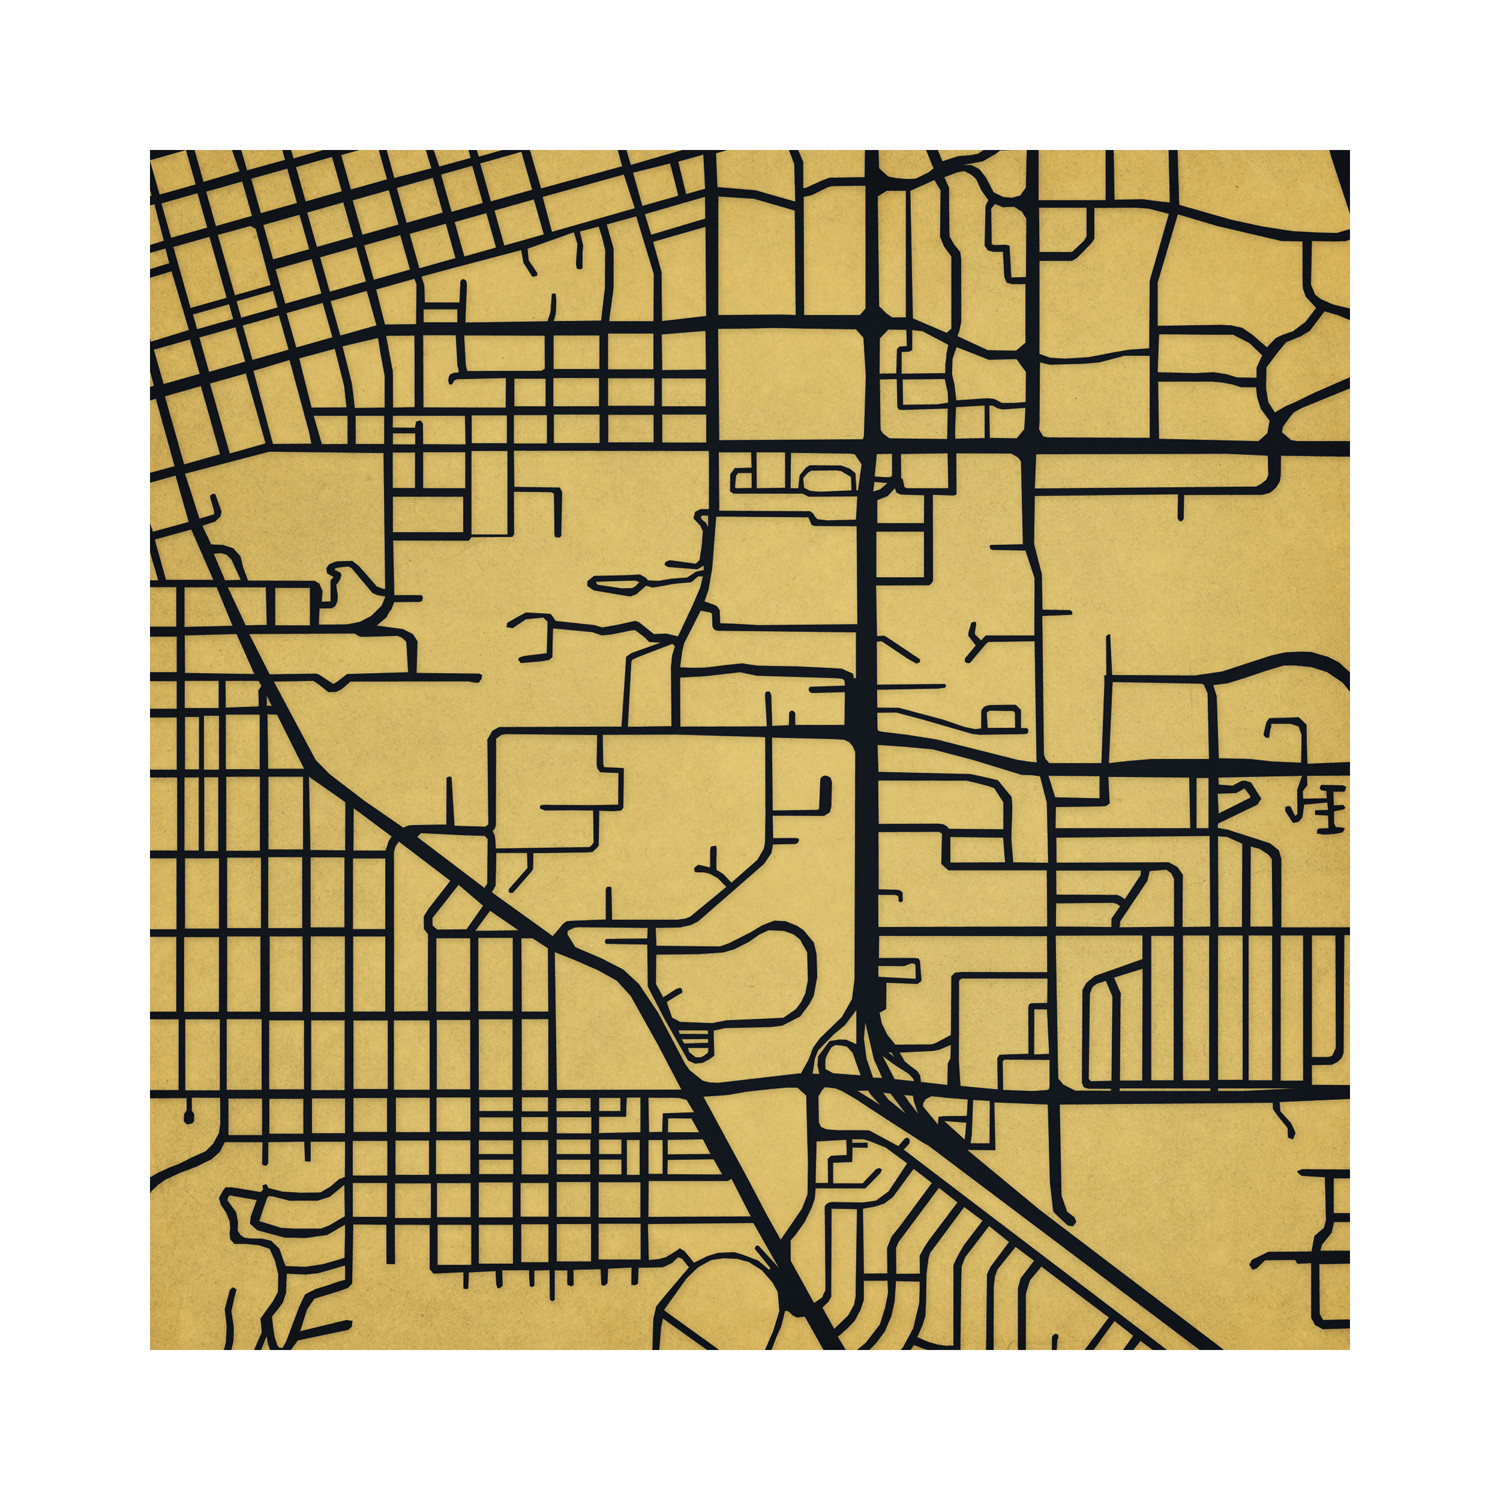 University Of Colorado Boulder Campus Maps Touch Of Modern